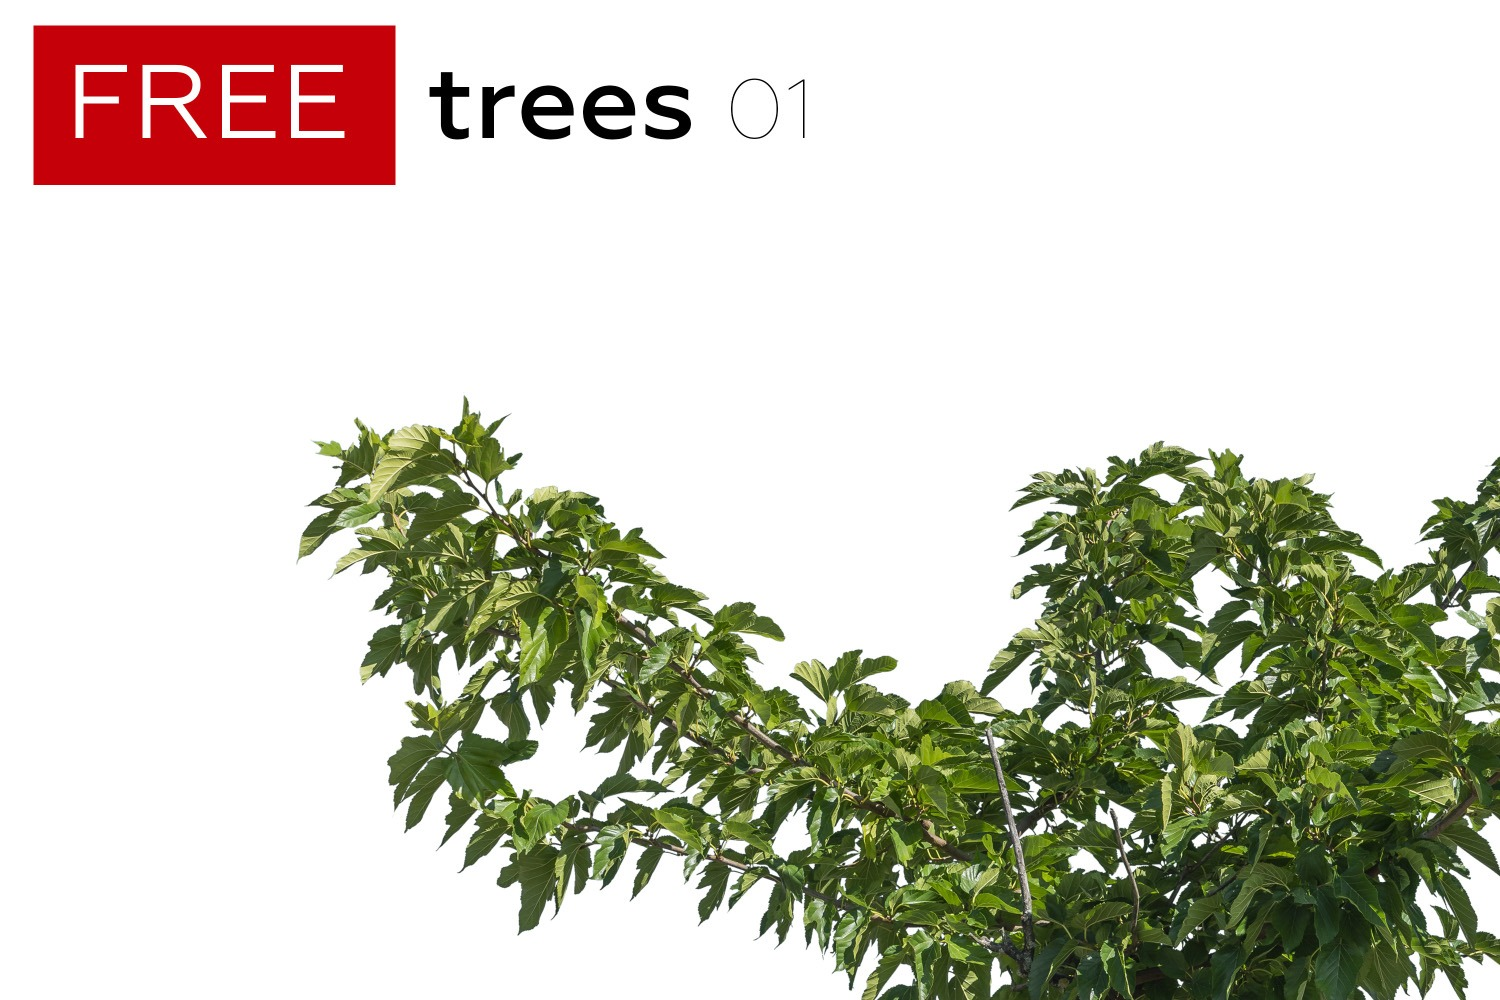 FREE STUFF - 5 Free Trees - Volume 1